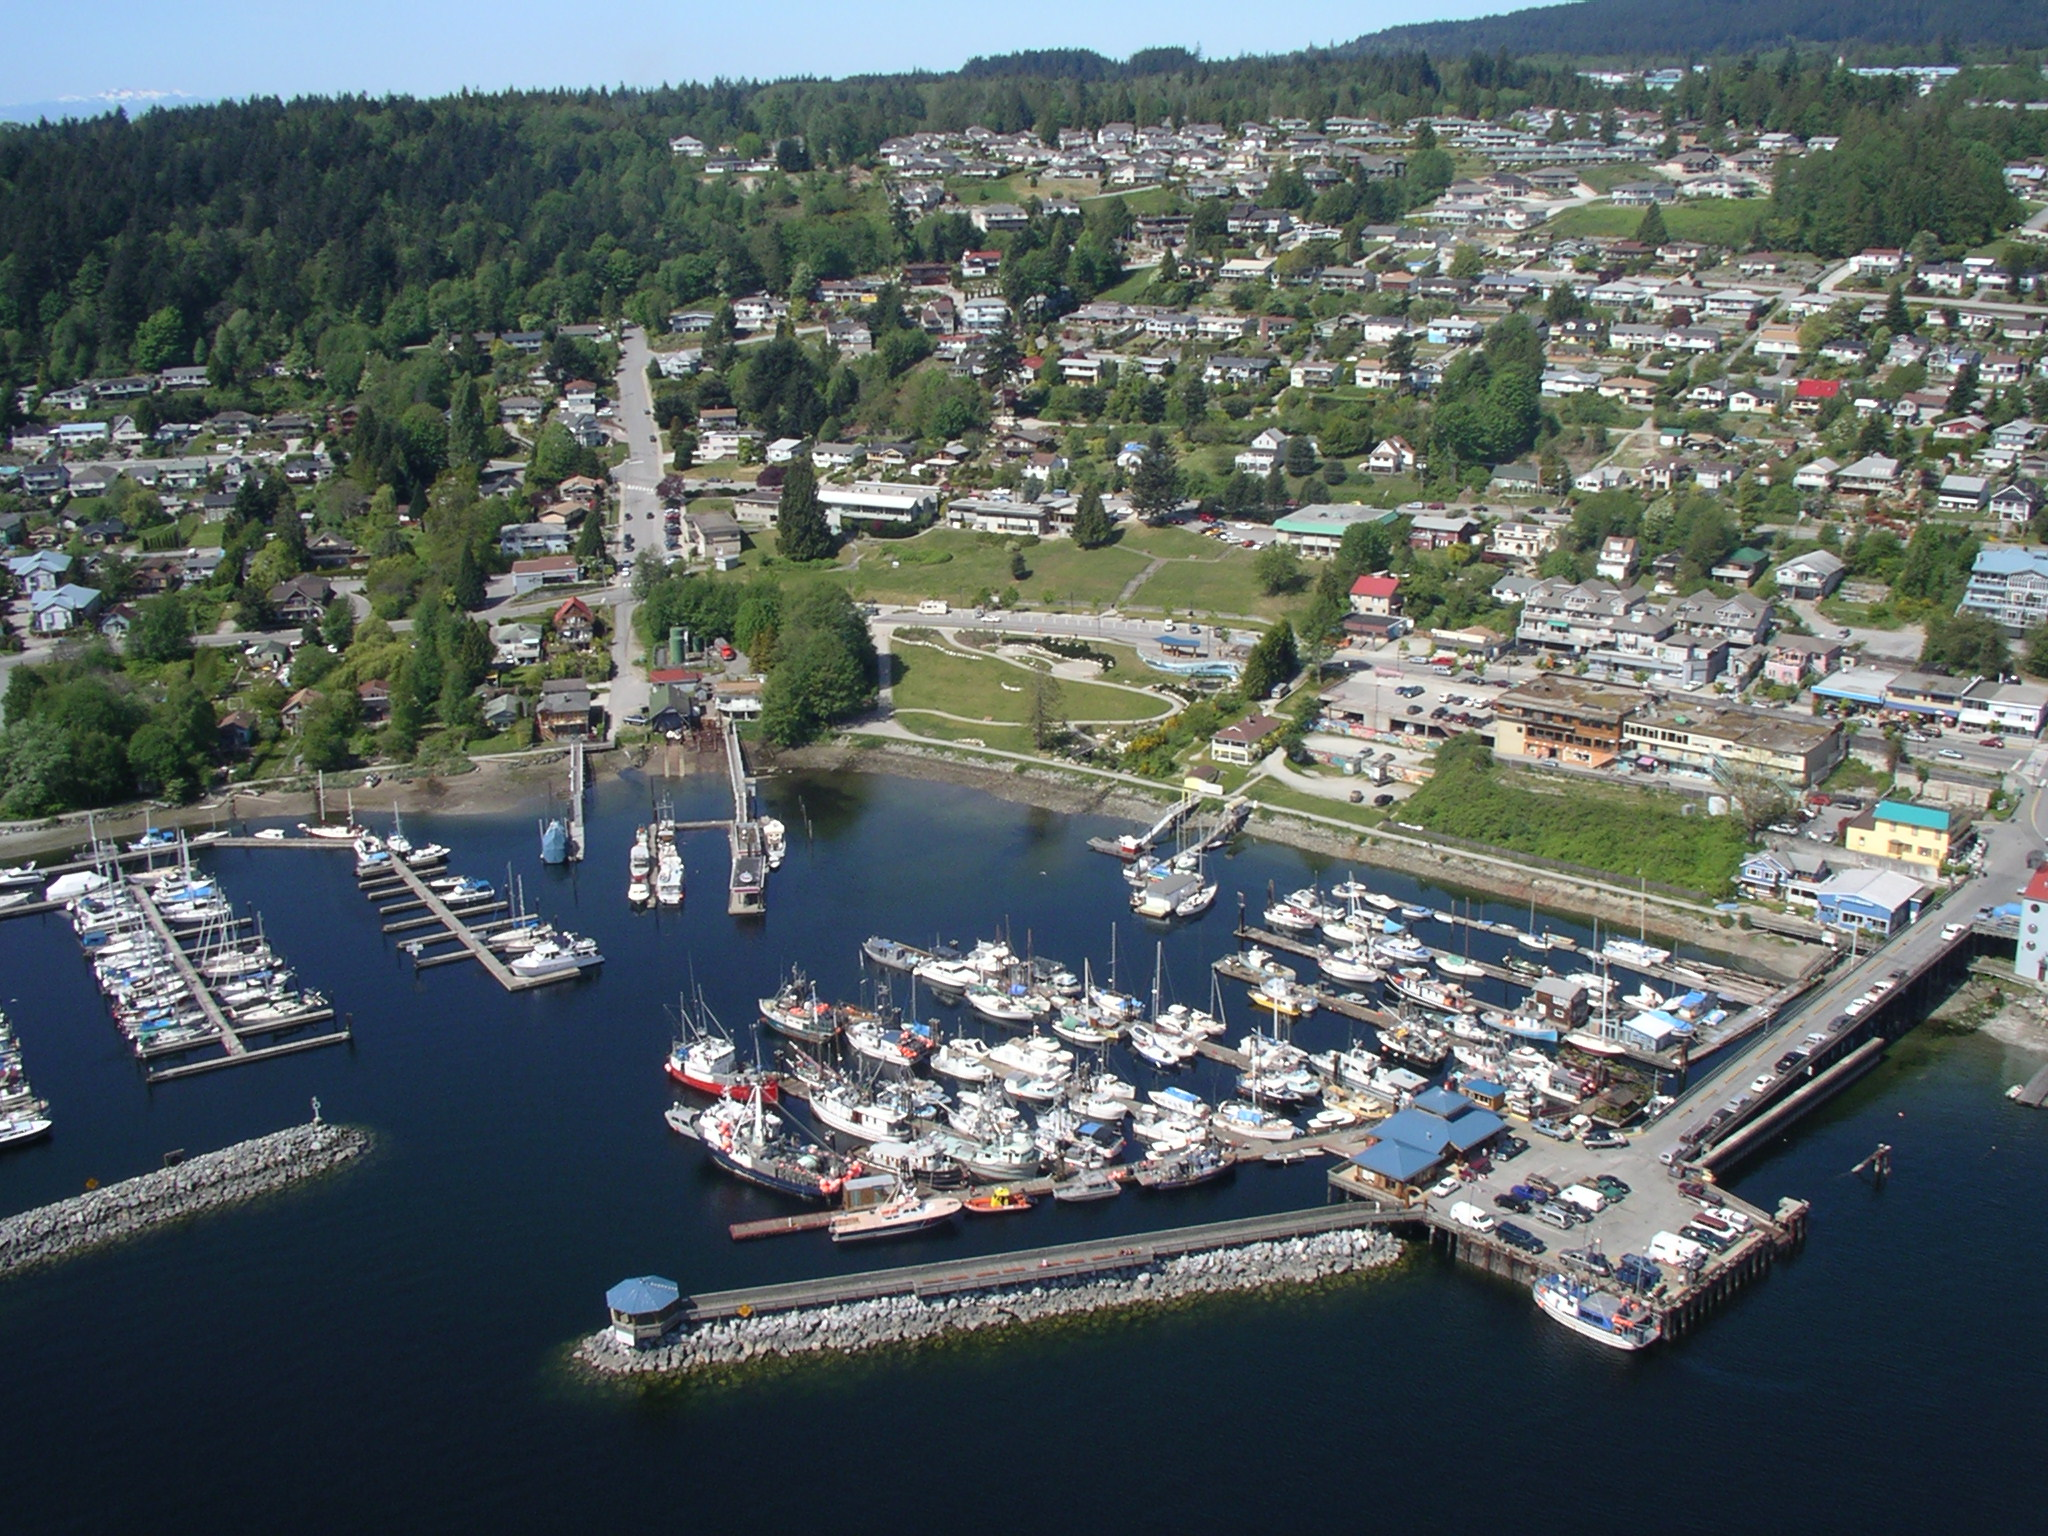 Aerial view of Gibsons Harbour on the Sunshine Coast, British Columbia